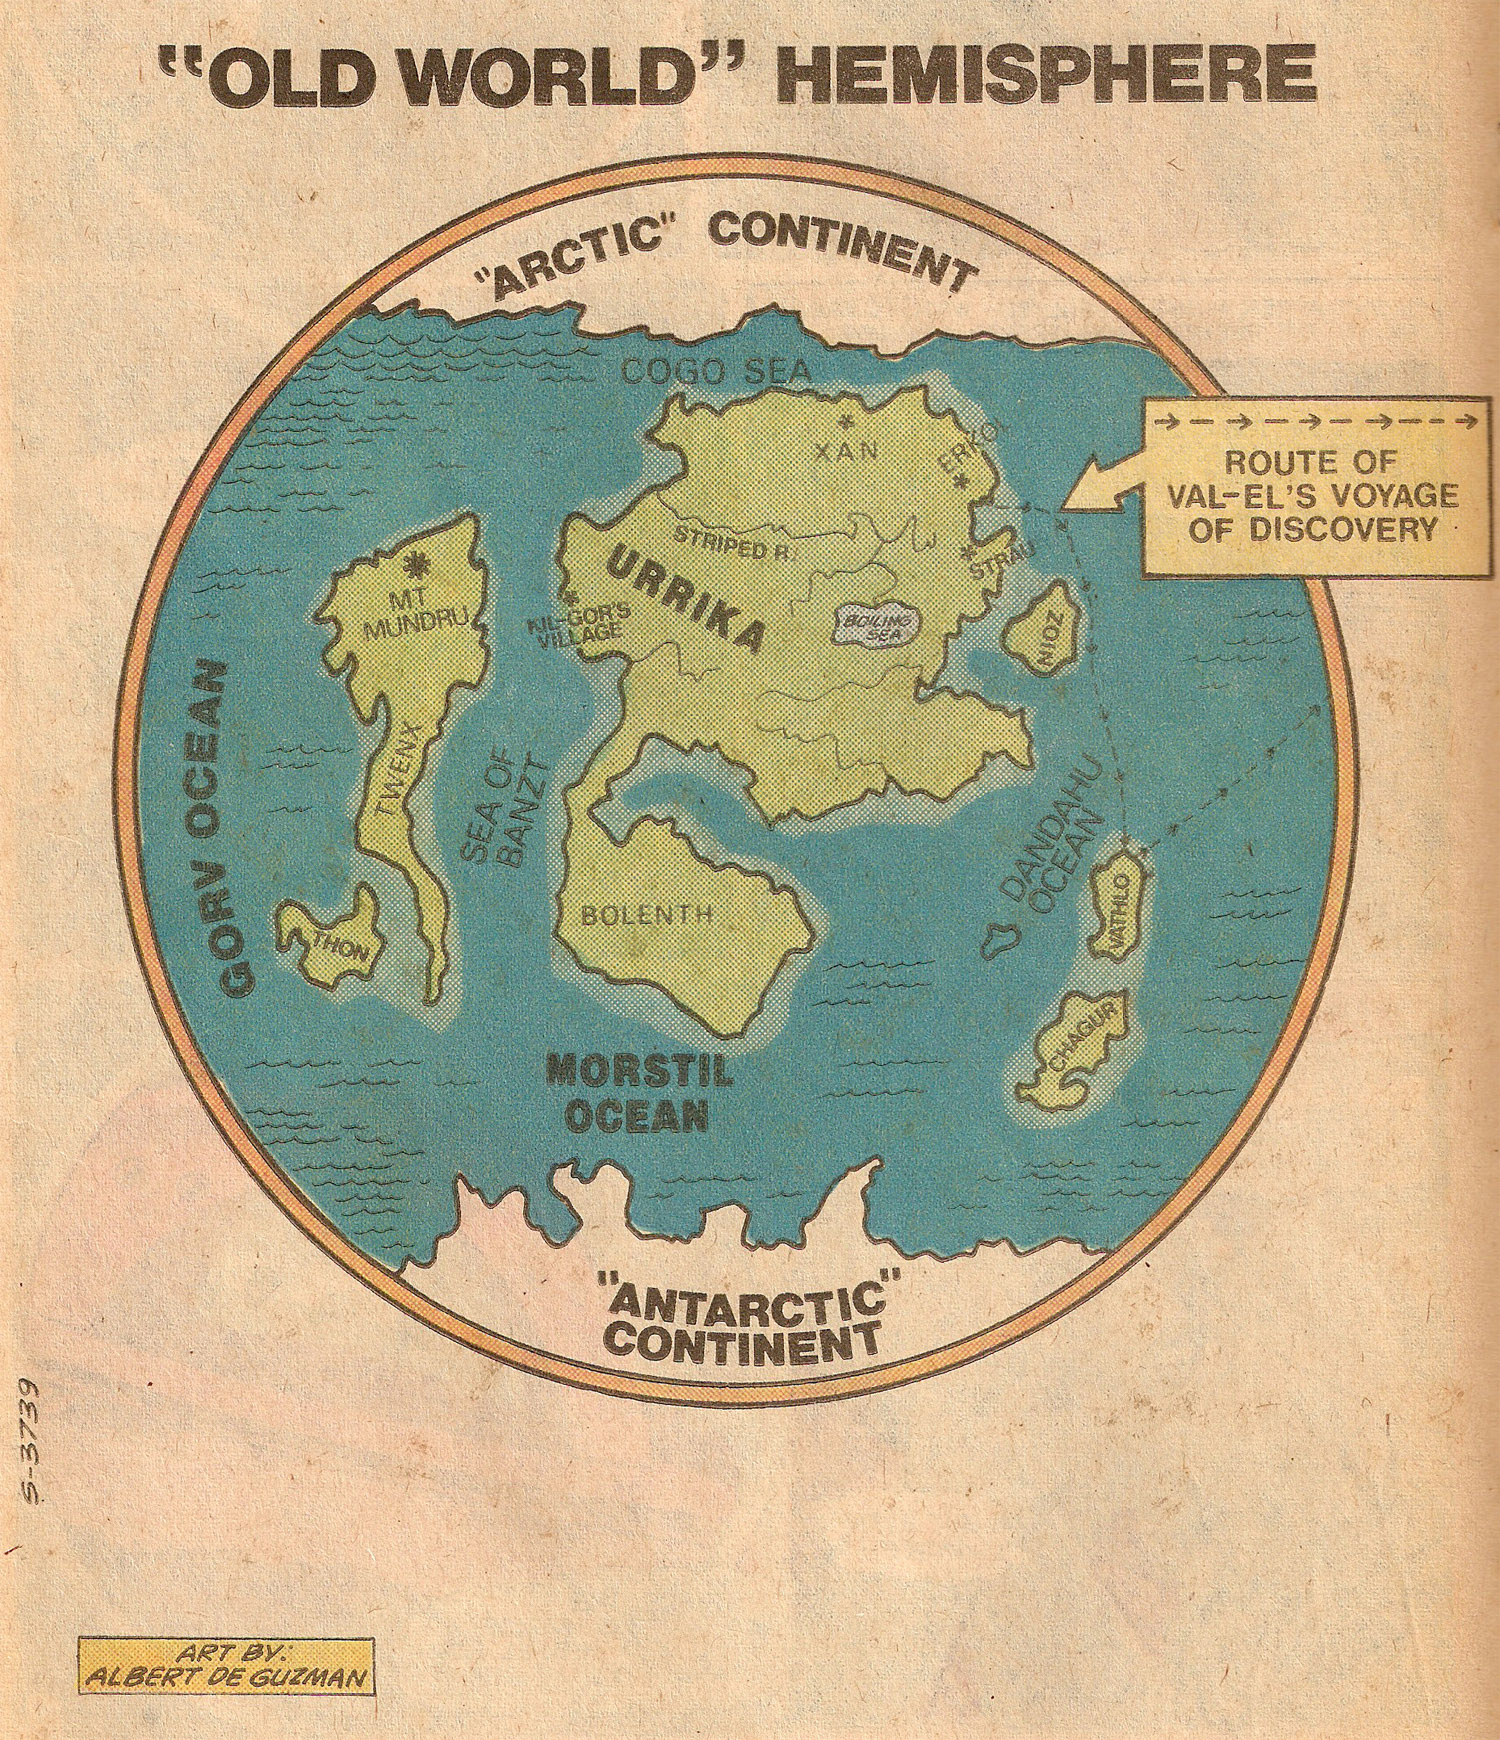 Map of Krypton- Old World Hemisphere